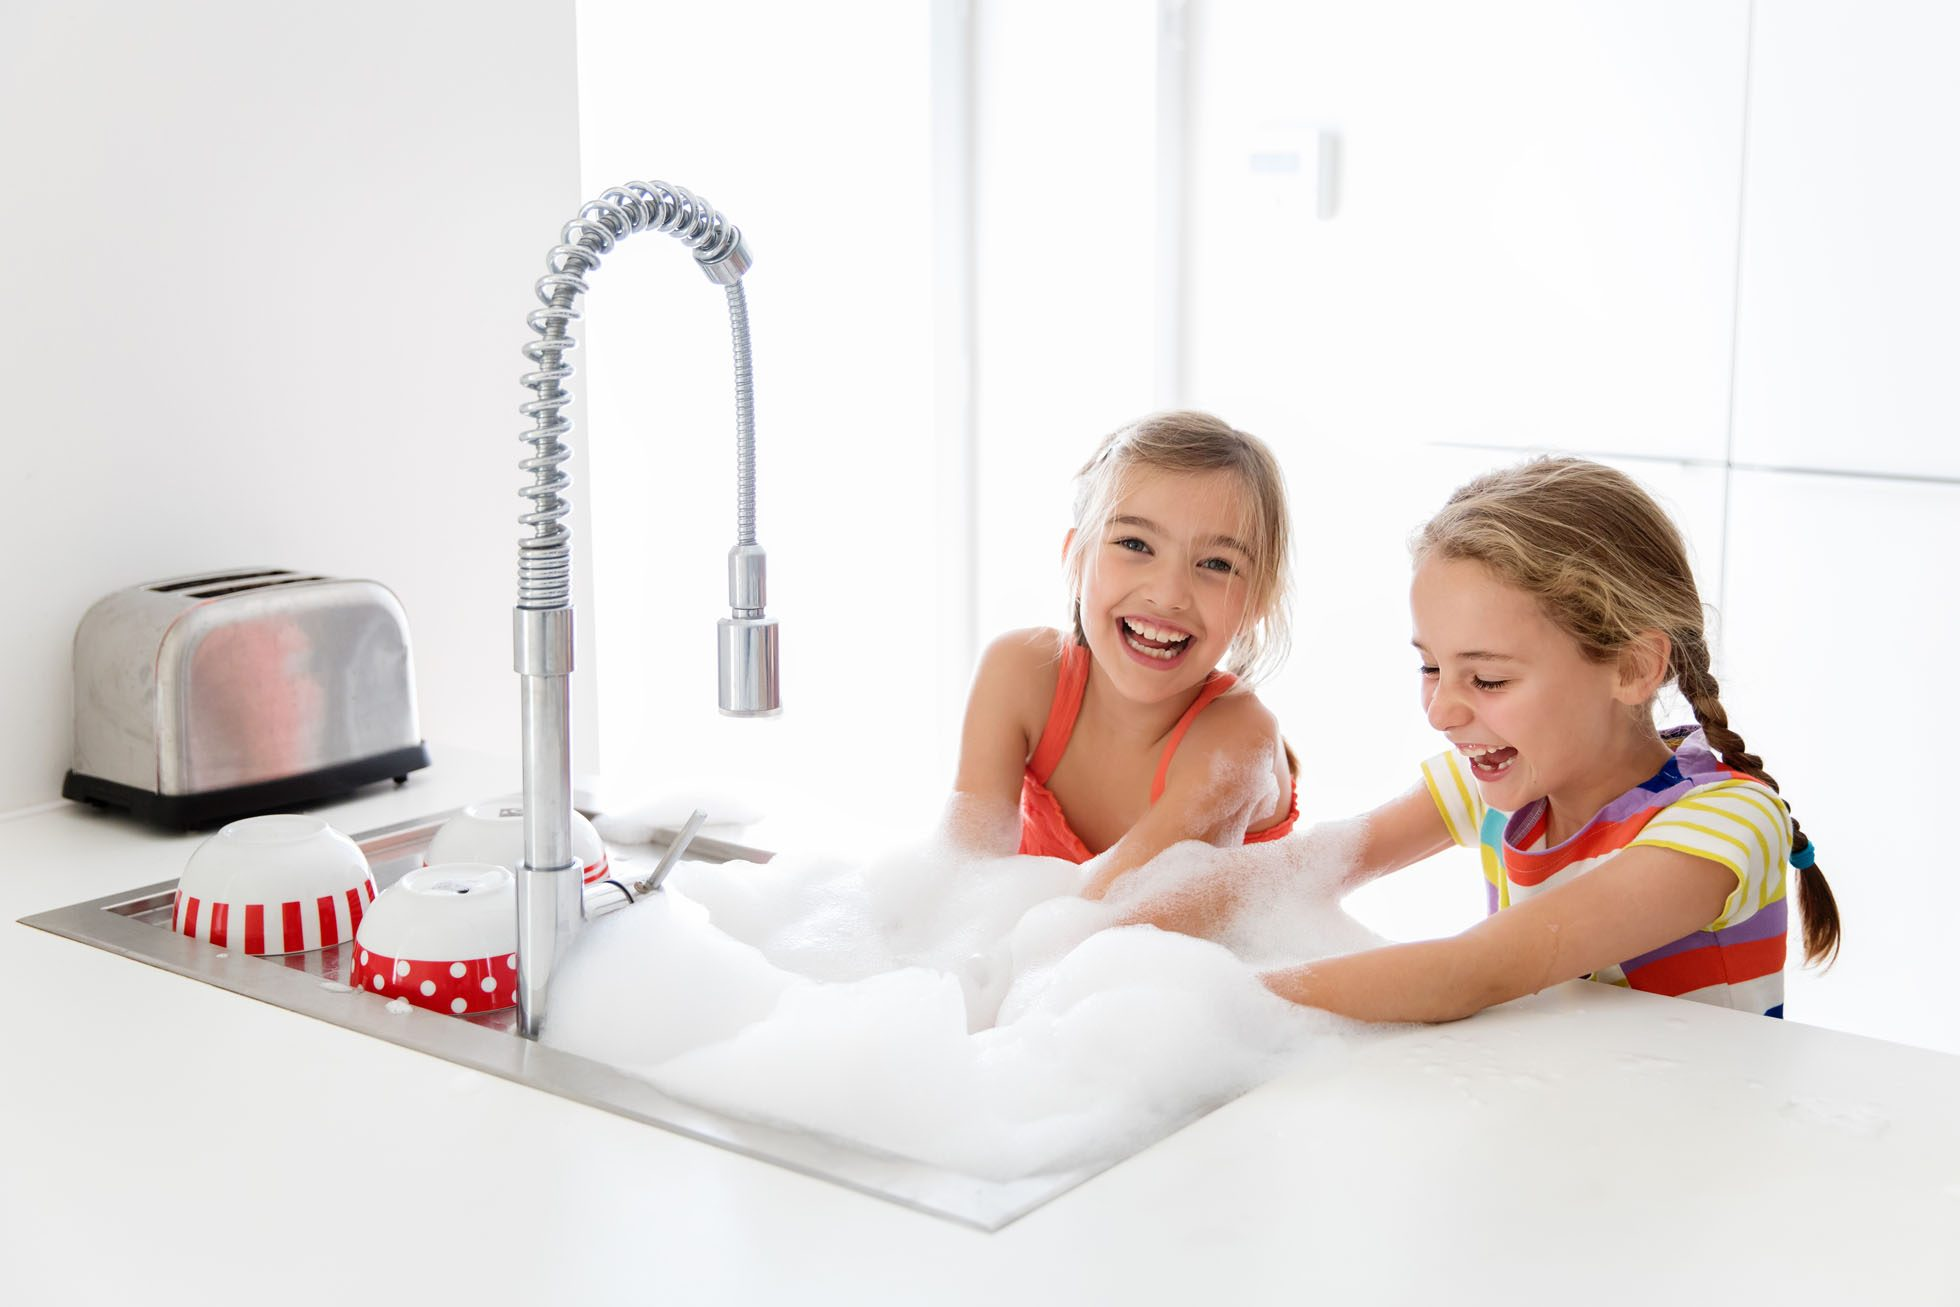 Dishwashing with your bestie